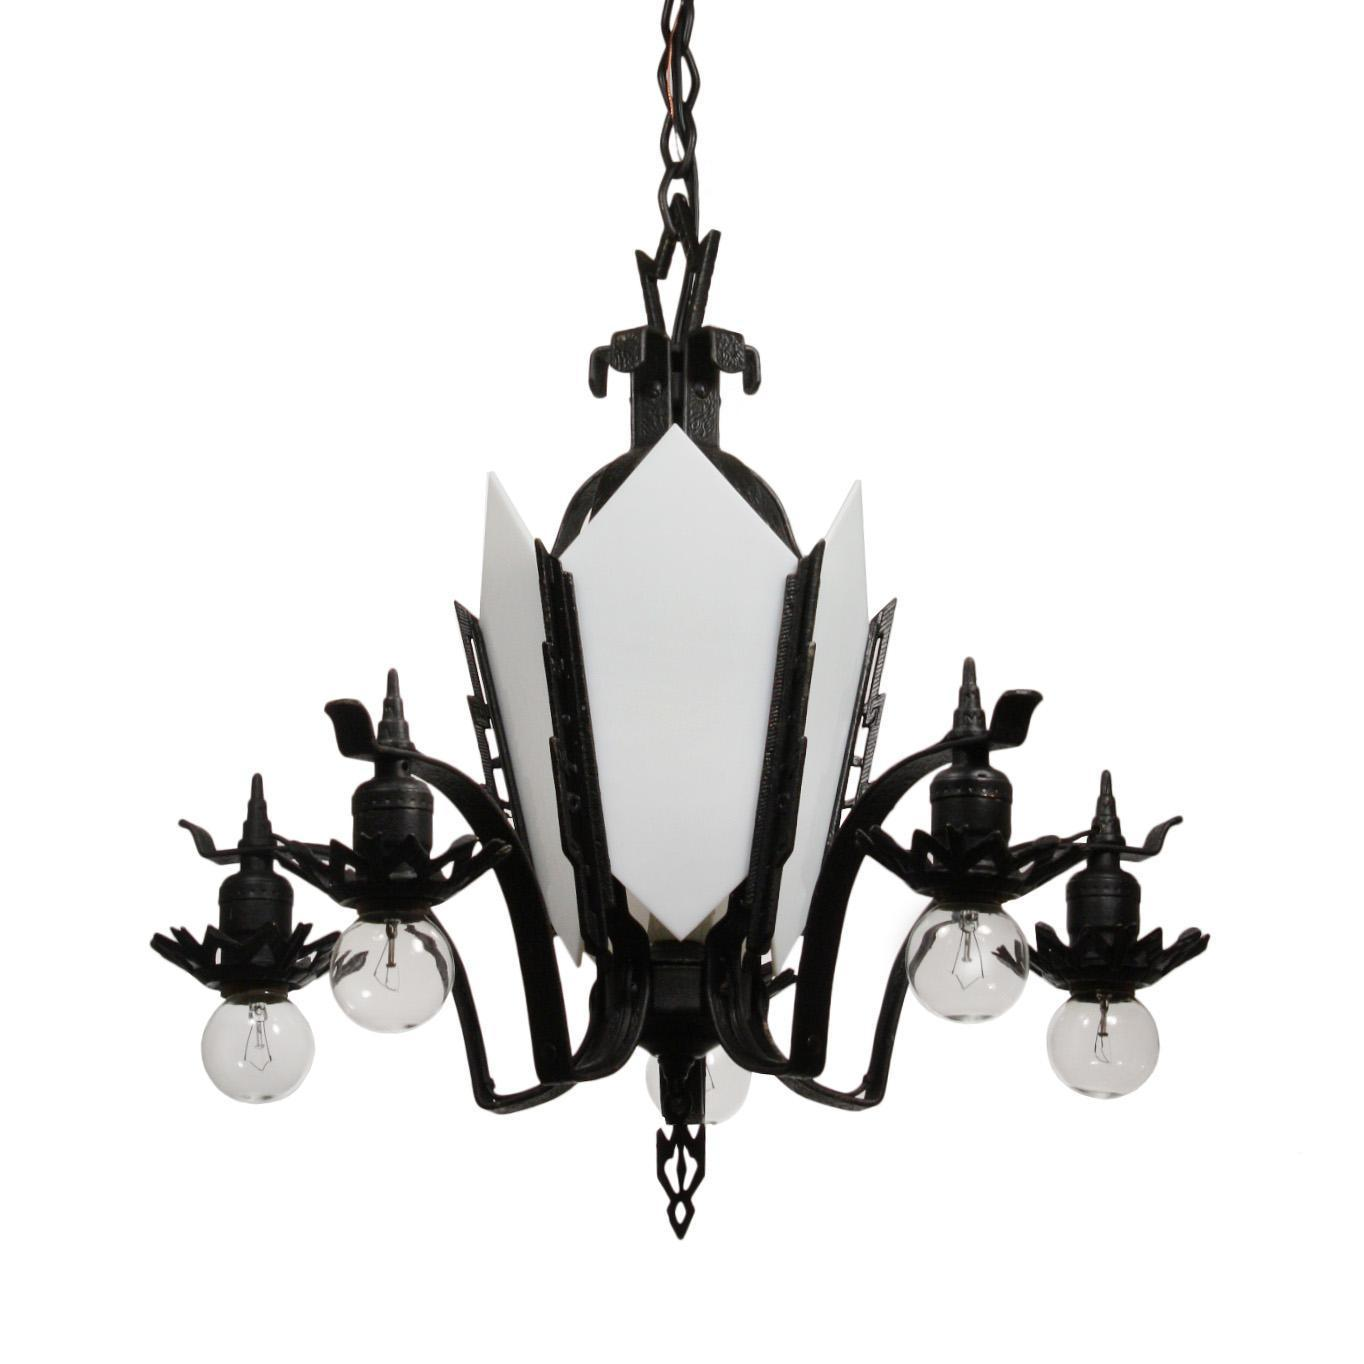 Antique Art Deco Cast Iron Chandelier, c. 1930's